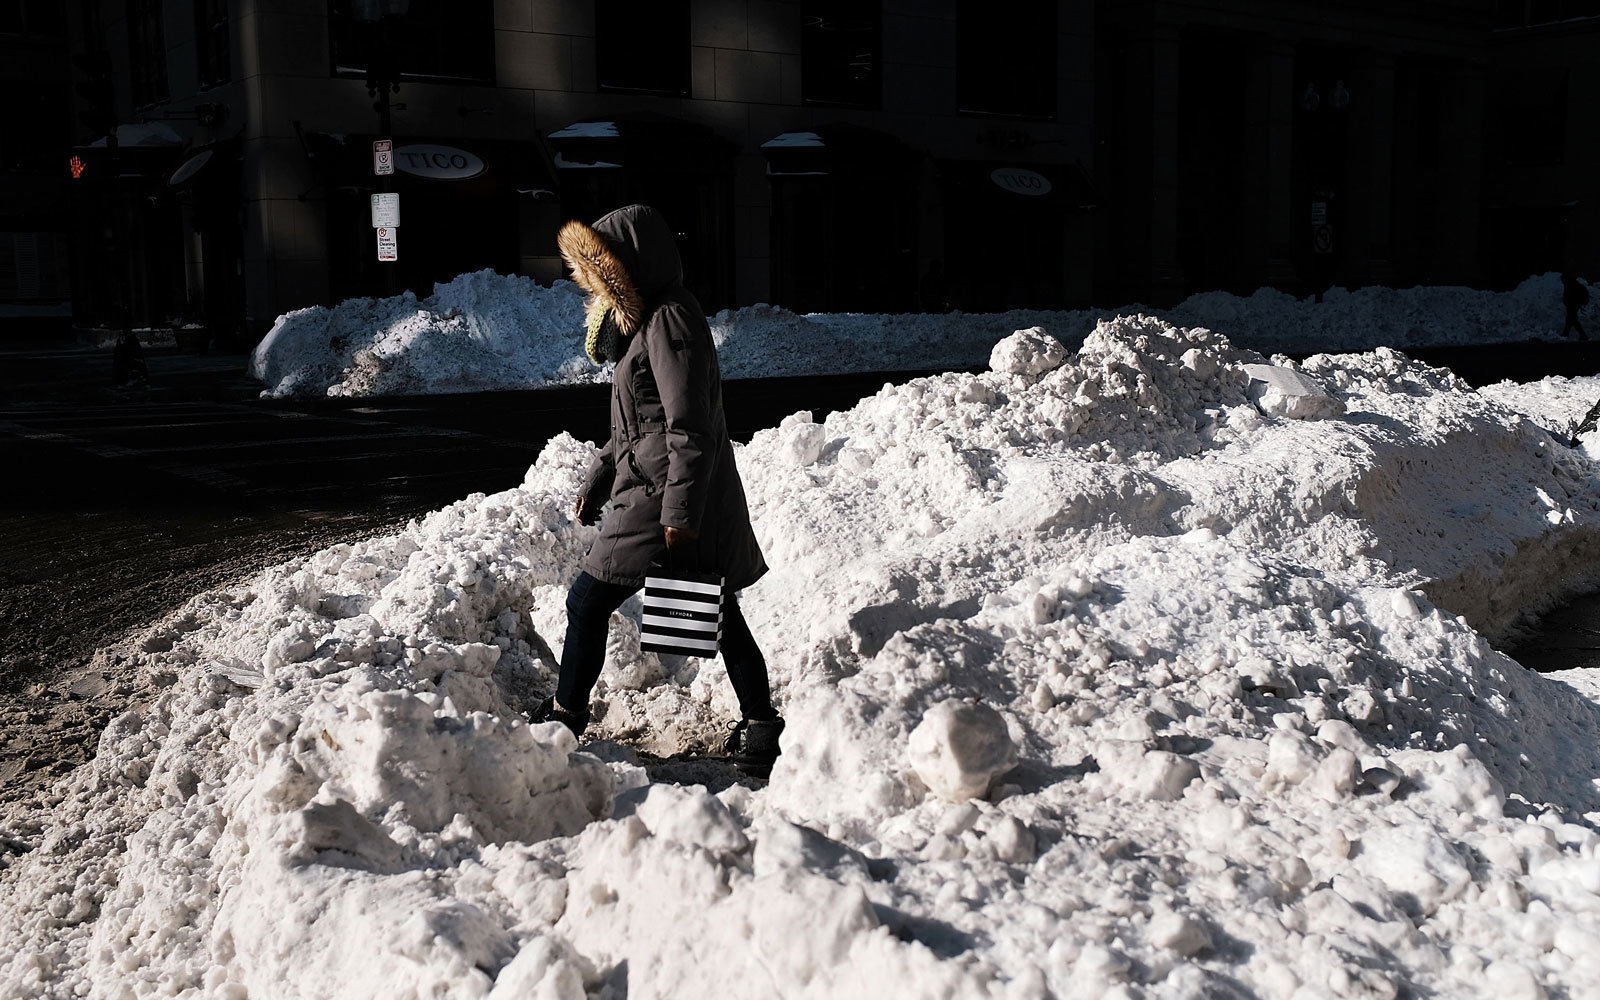 Commuters Affected As Second Snow Storm Hits New York, Surrounding States